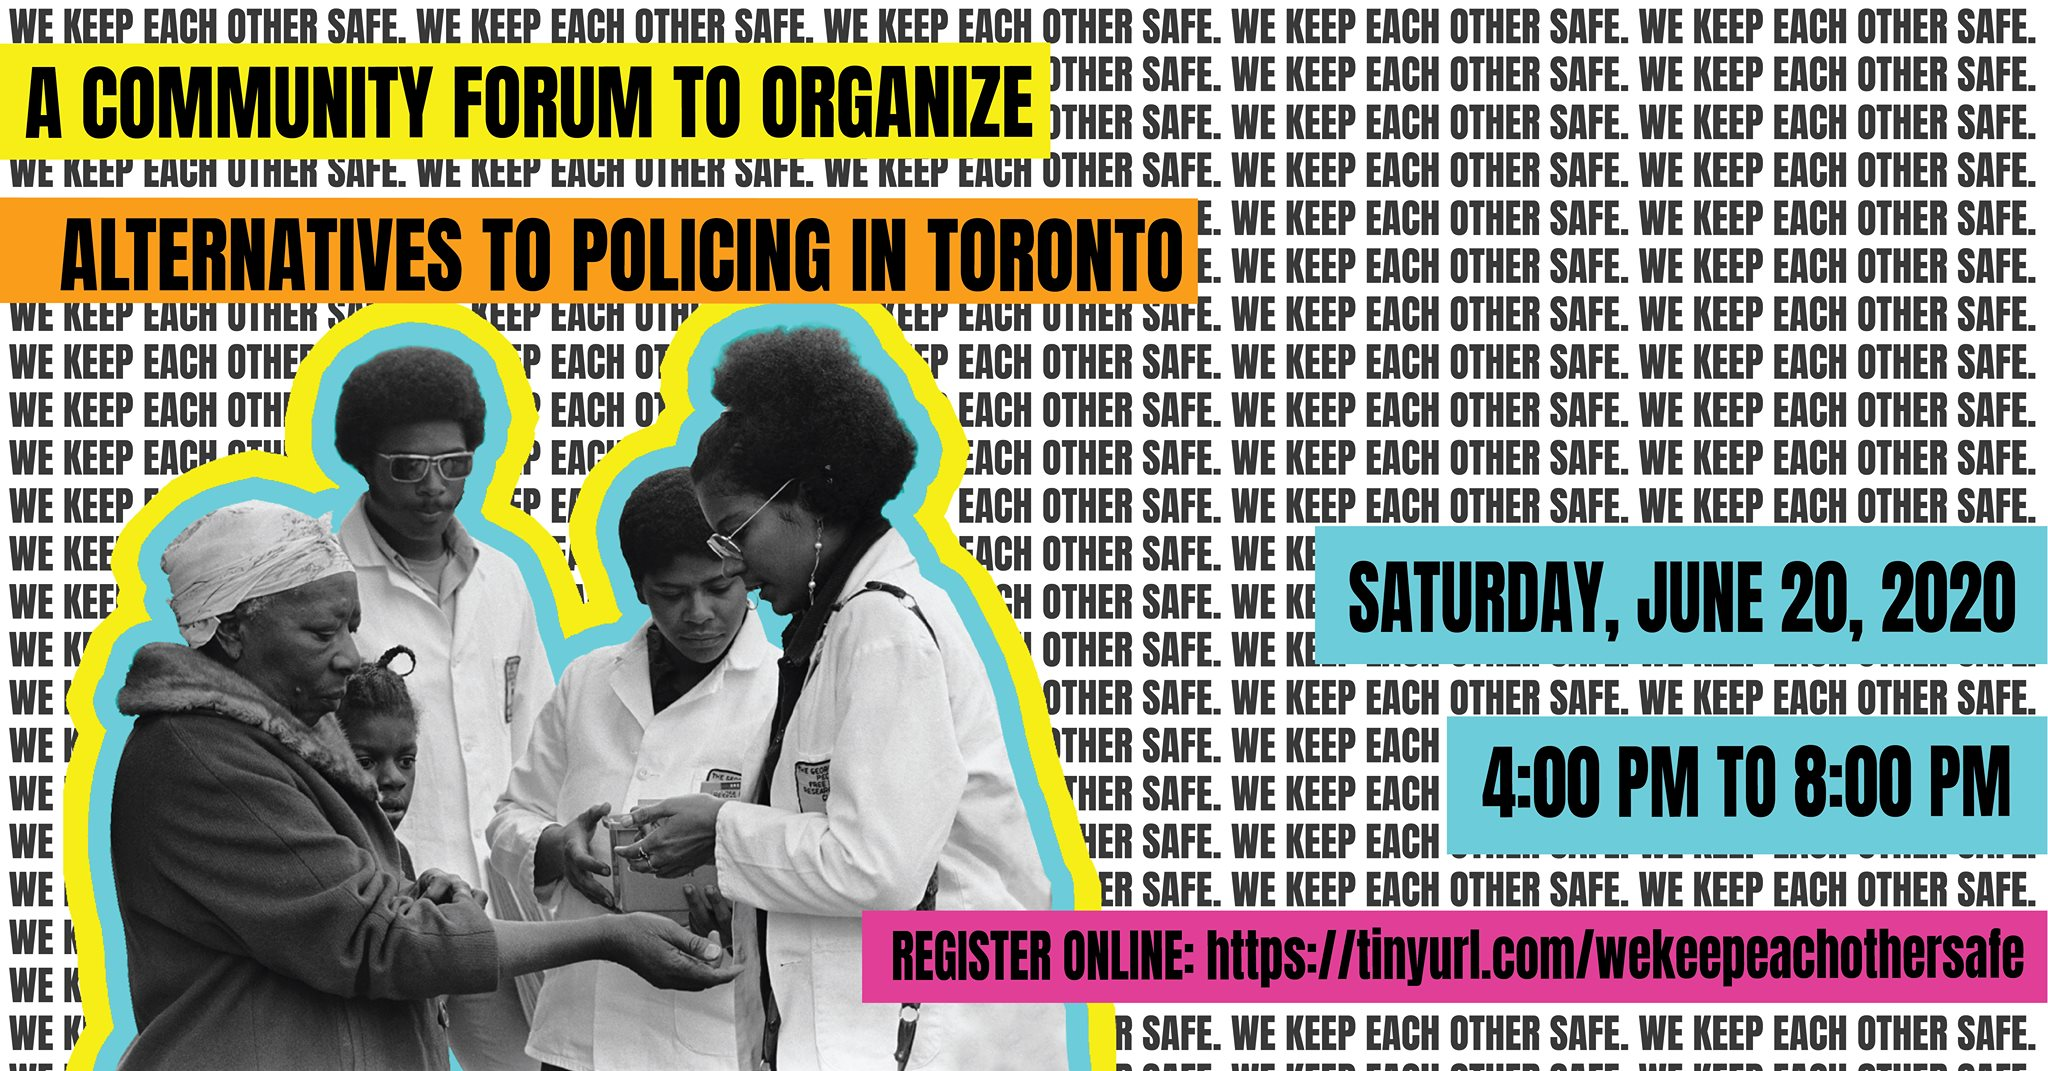 Alternatives to policing forum in Toronto poster